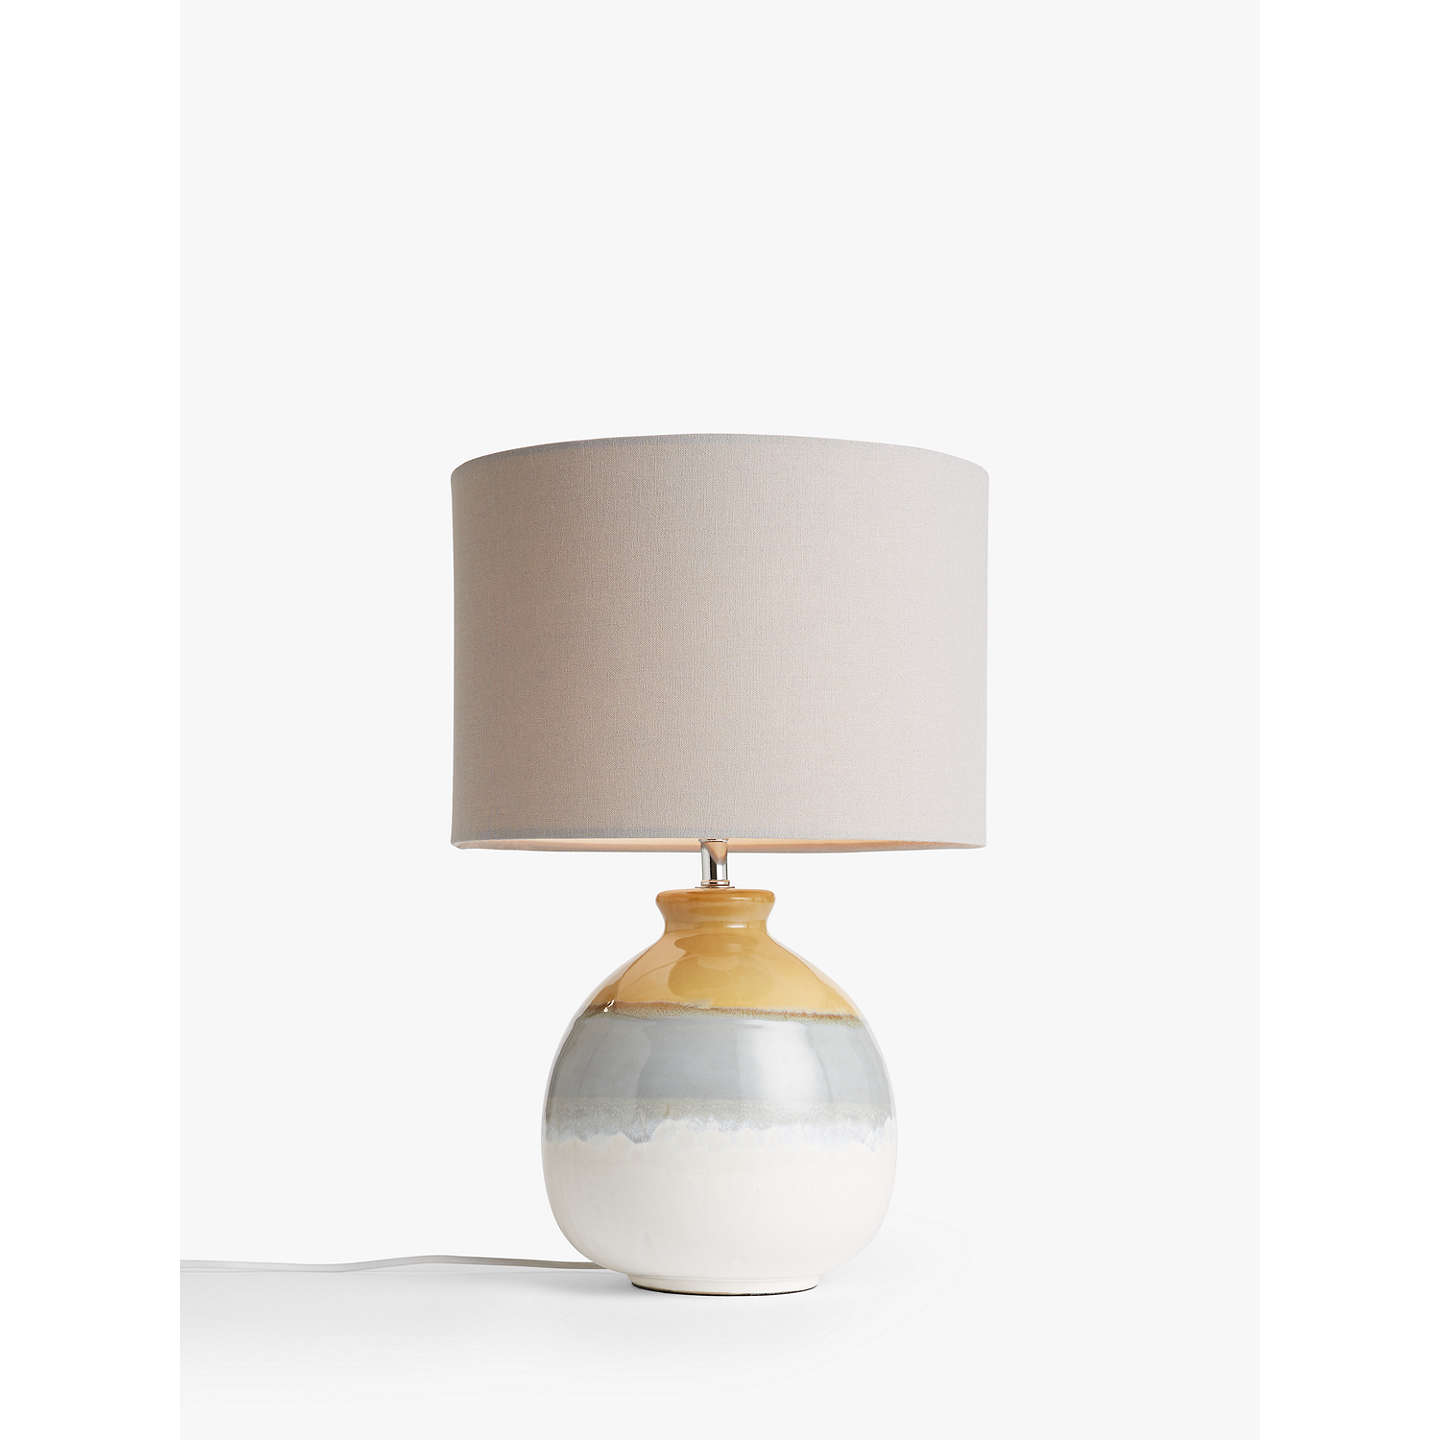 John lewis martha stripe ceramic table lamp at john lewis buyjohn lewis martha stripe ceramic table lamp sulphur online at johnlewis aloadofball Gallery